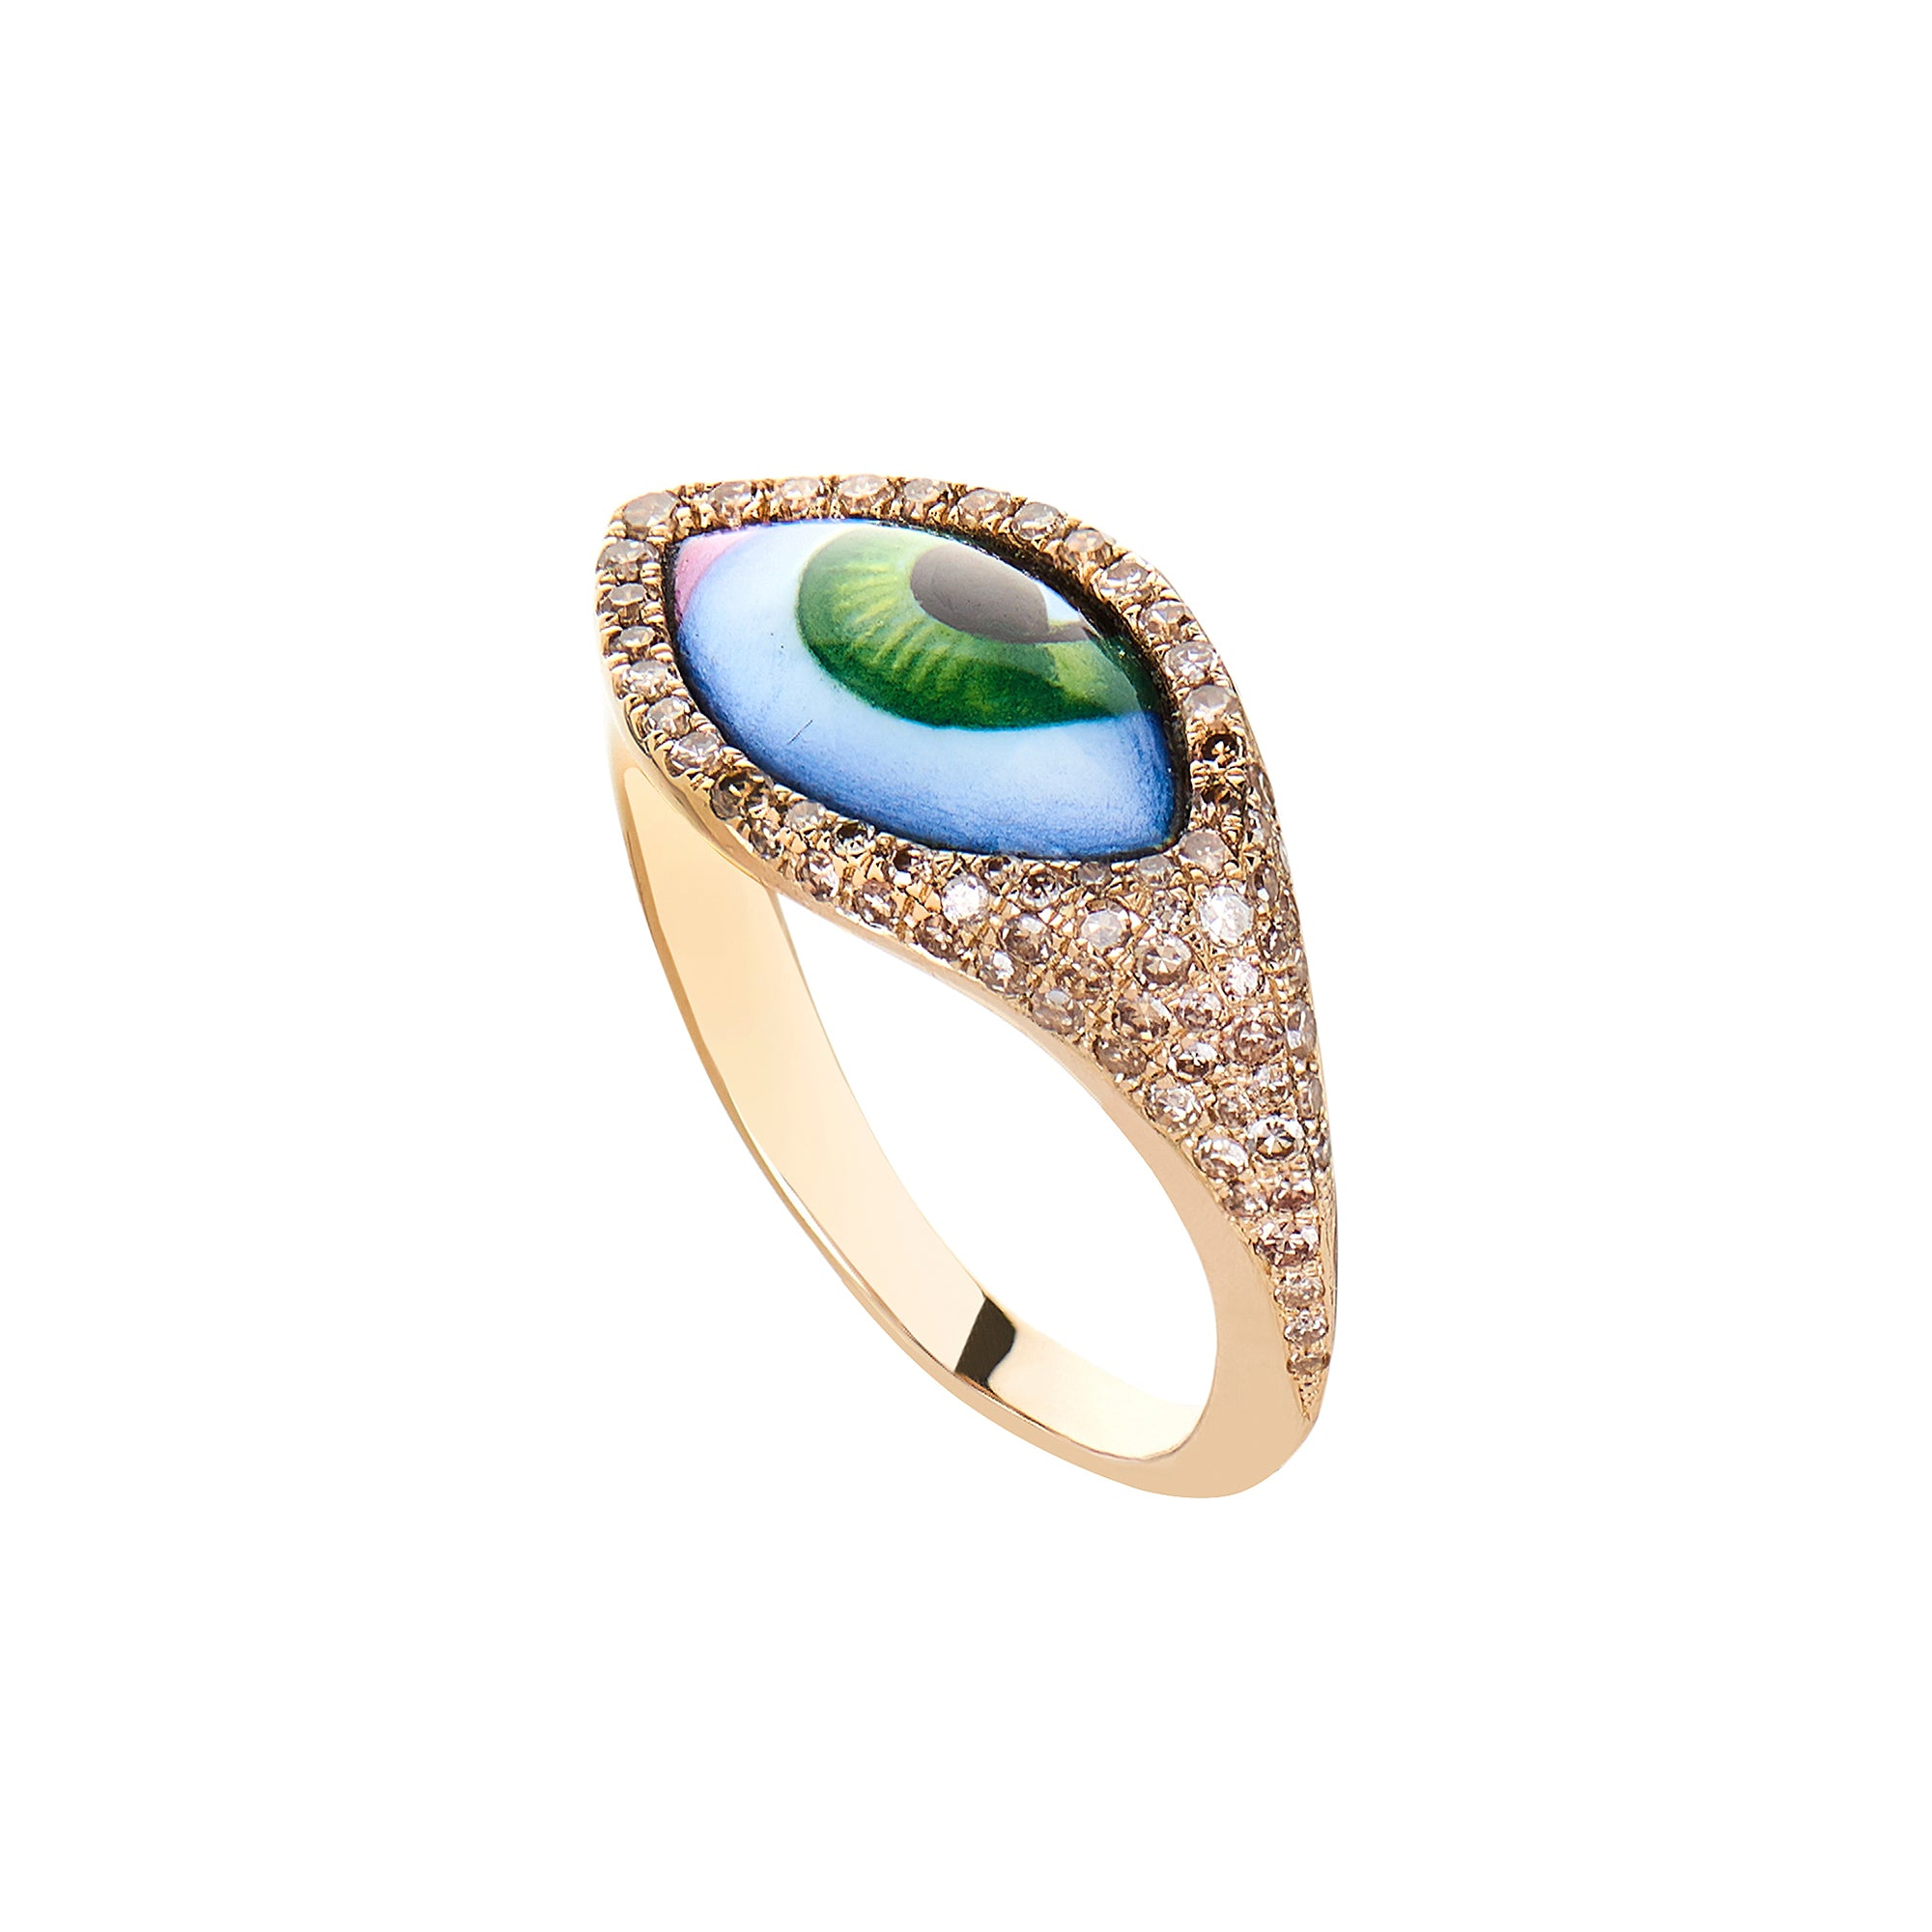 Small Green Eye Ring - Lito - Ring | Broken English Jewelry